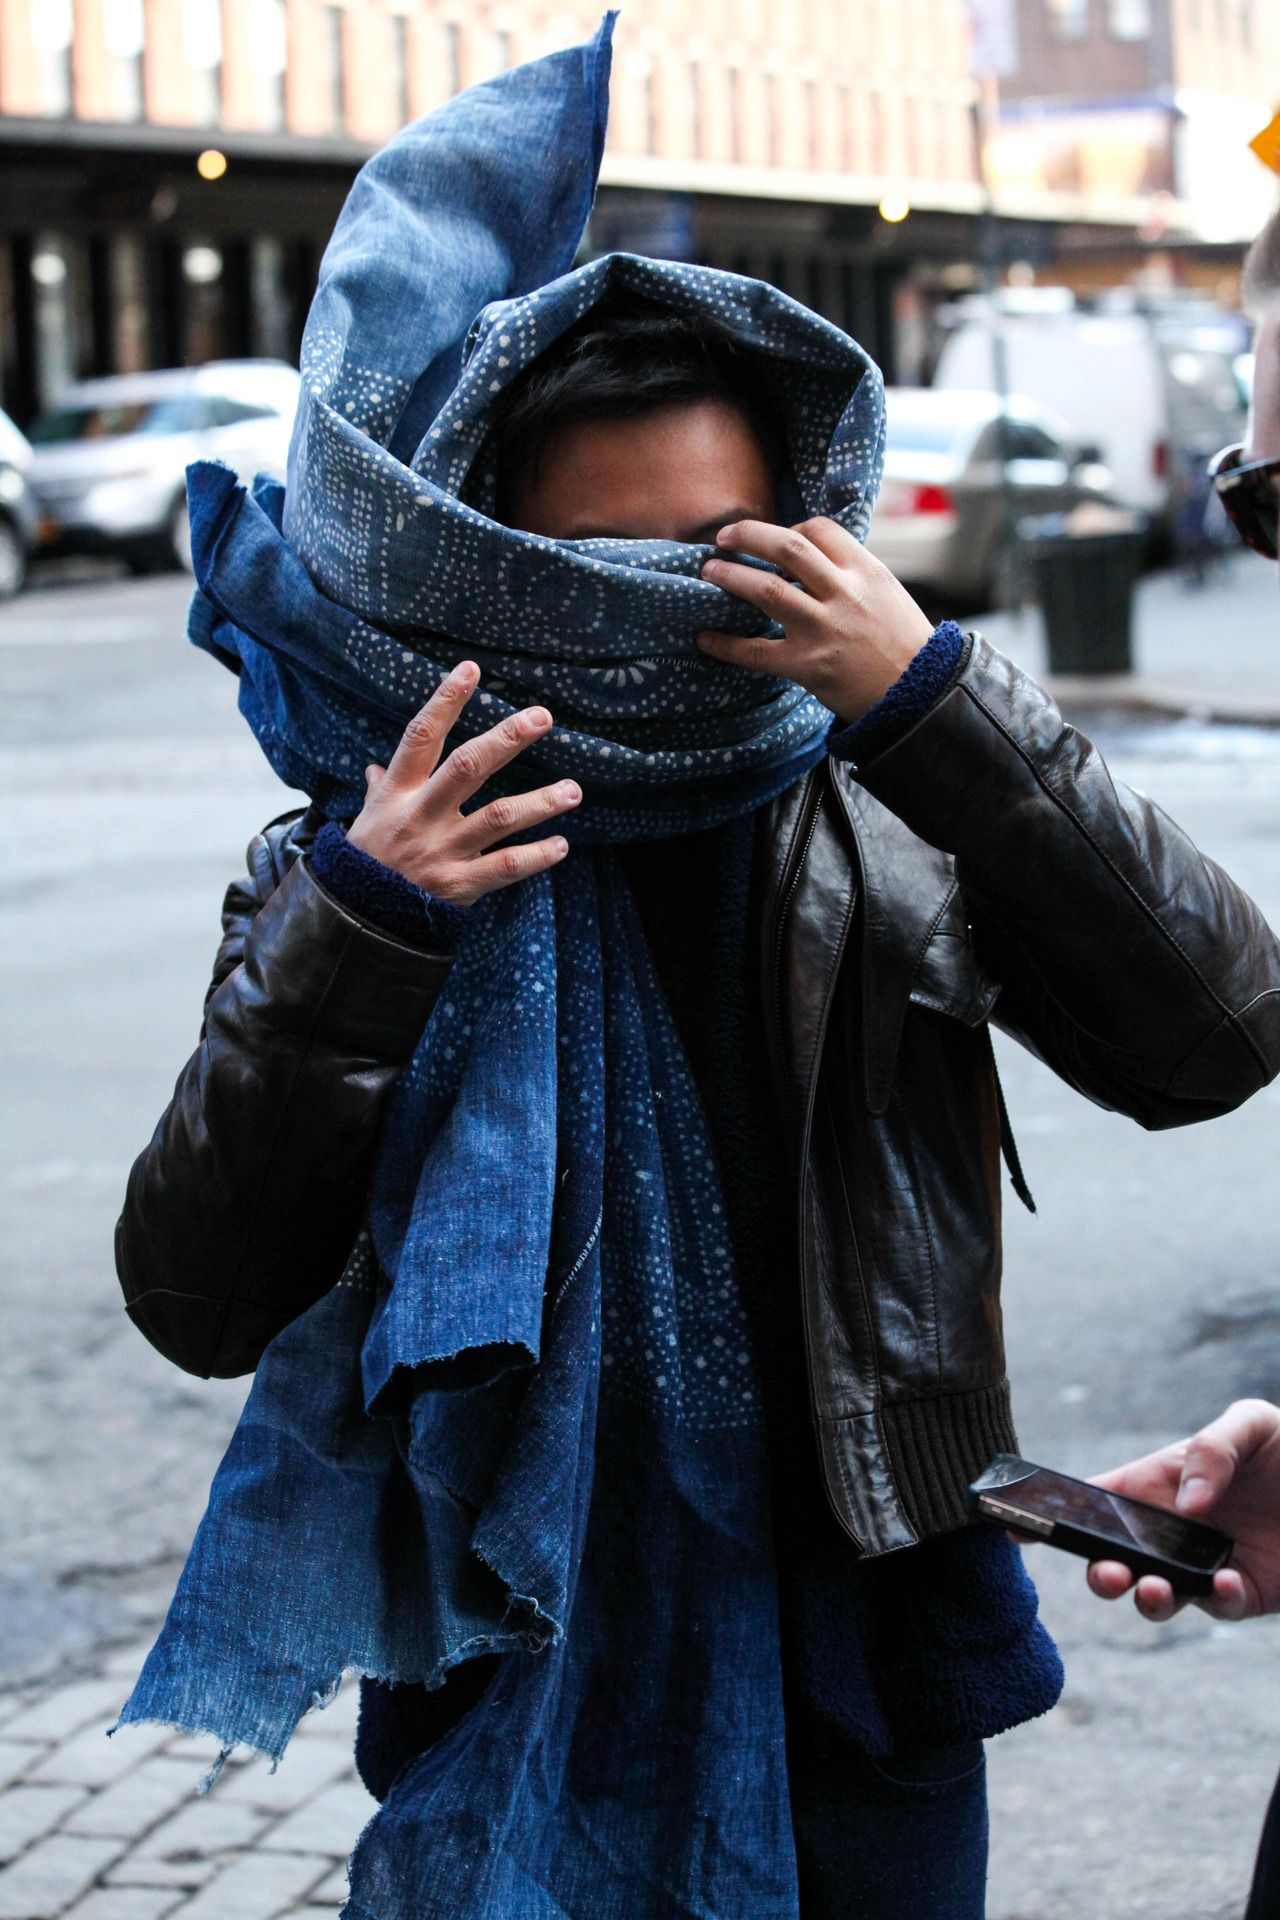 Watch - How to infinity wear scarf tumblr video